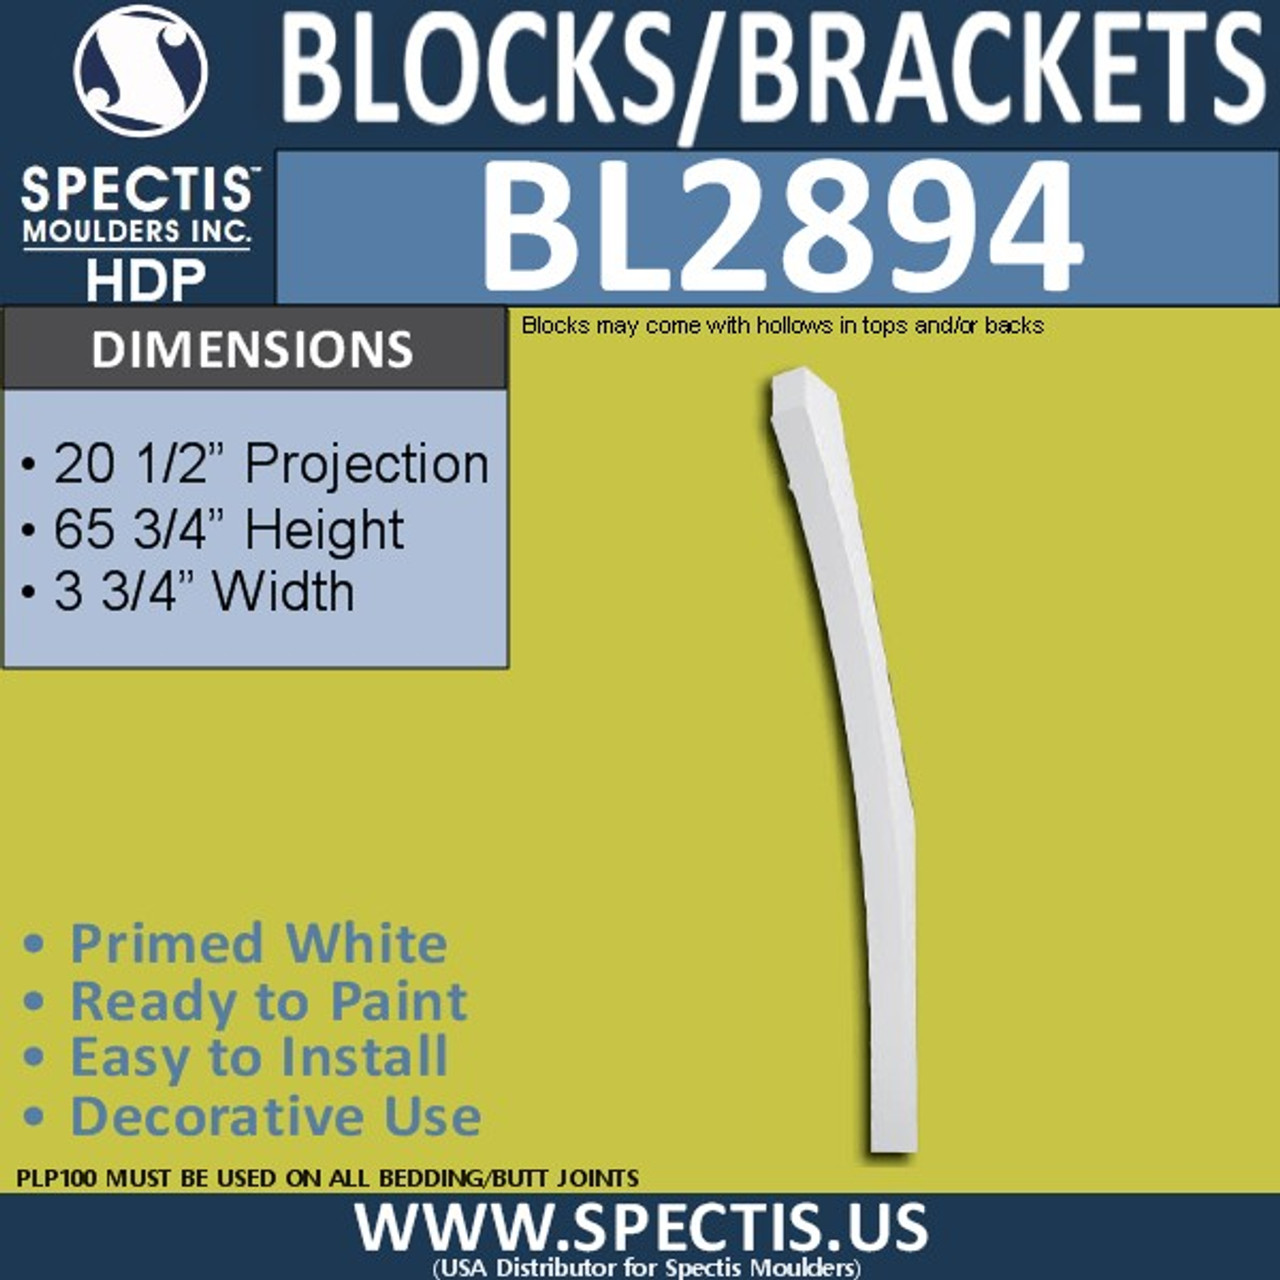 "BL2894 Eave Block or Bracket 3.75""W x 65.75""H x 20.5"" P"